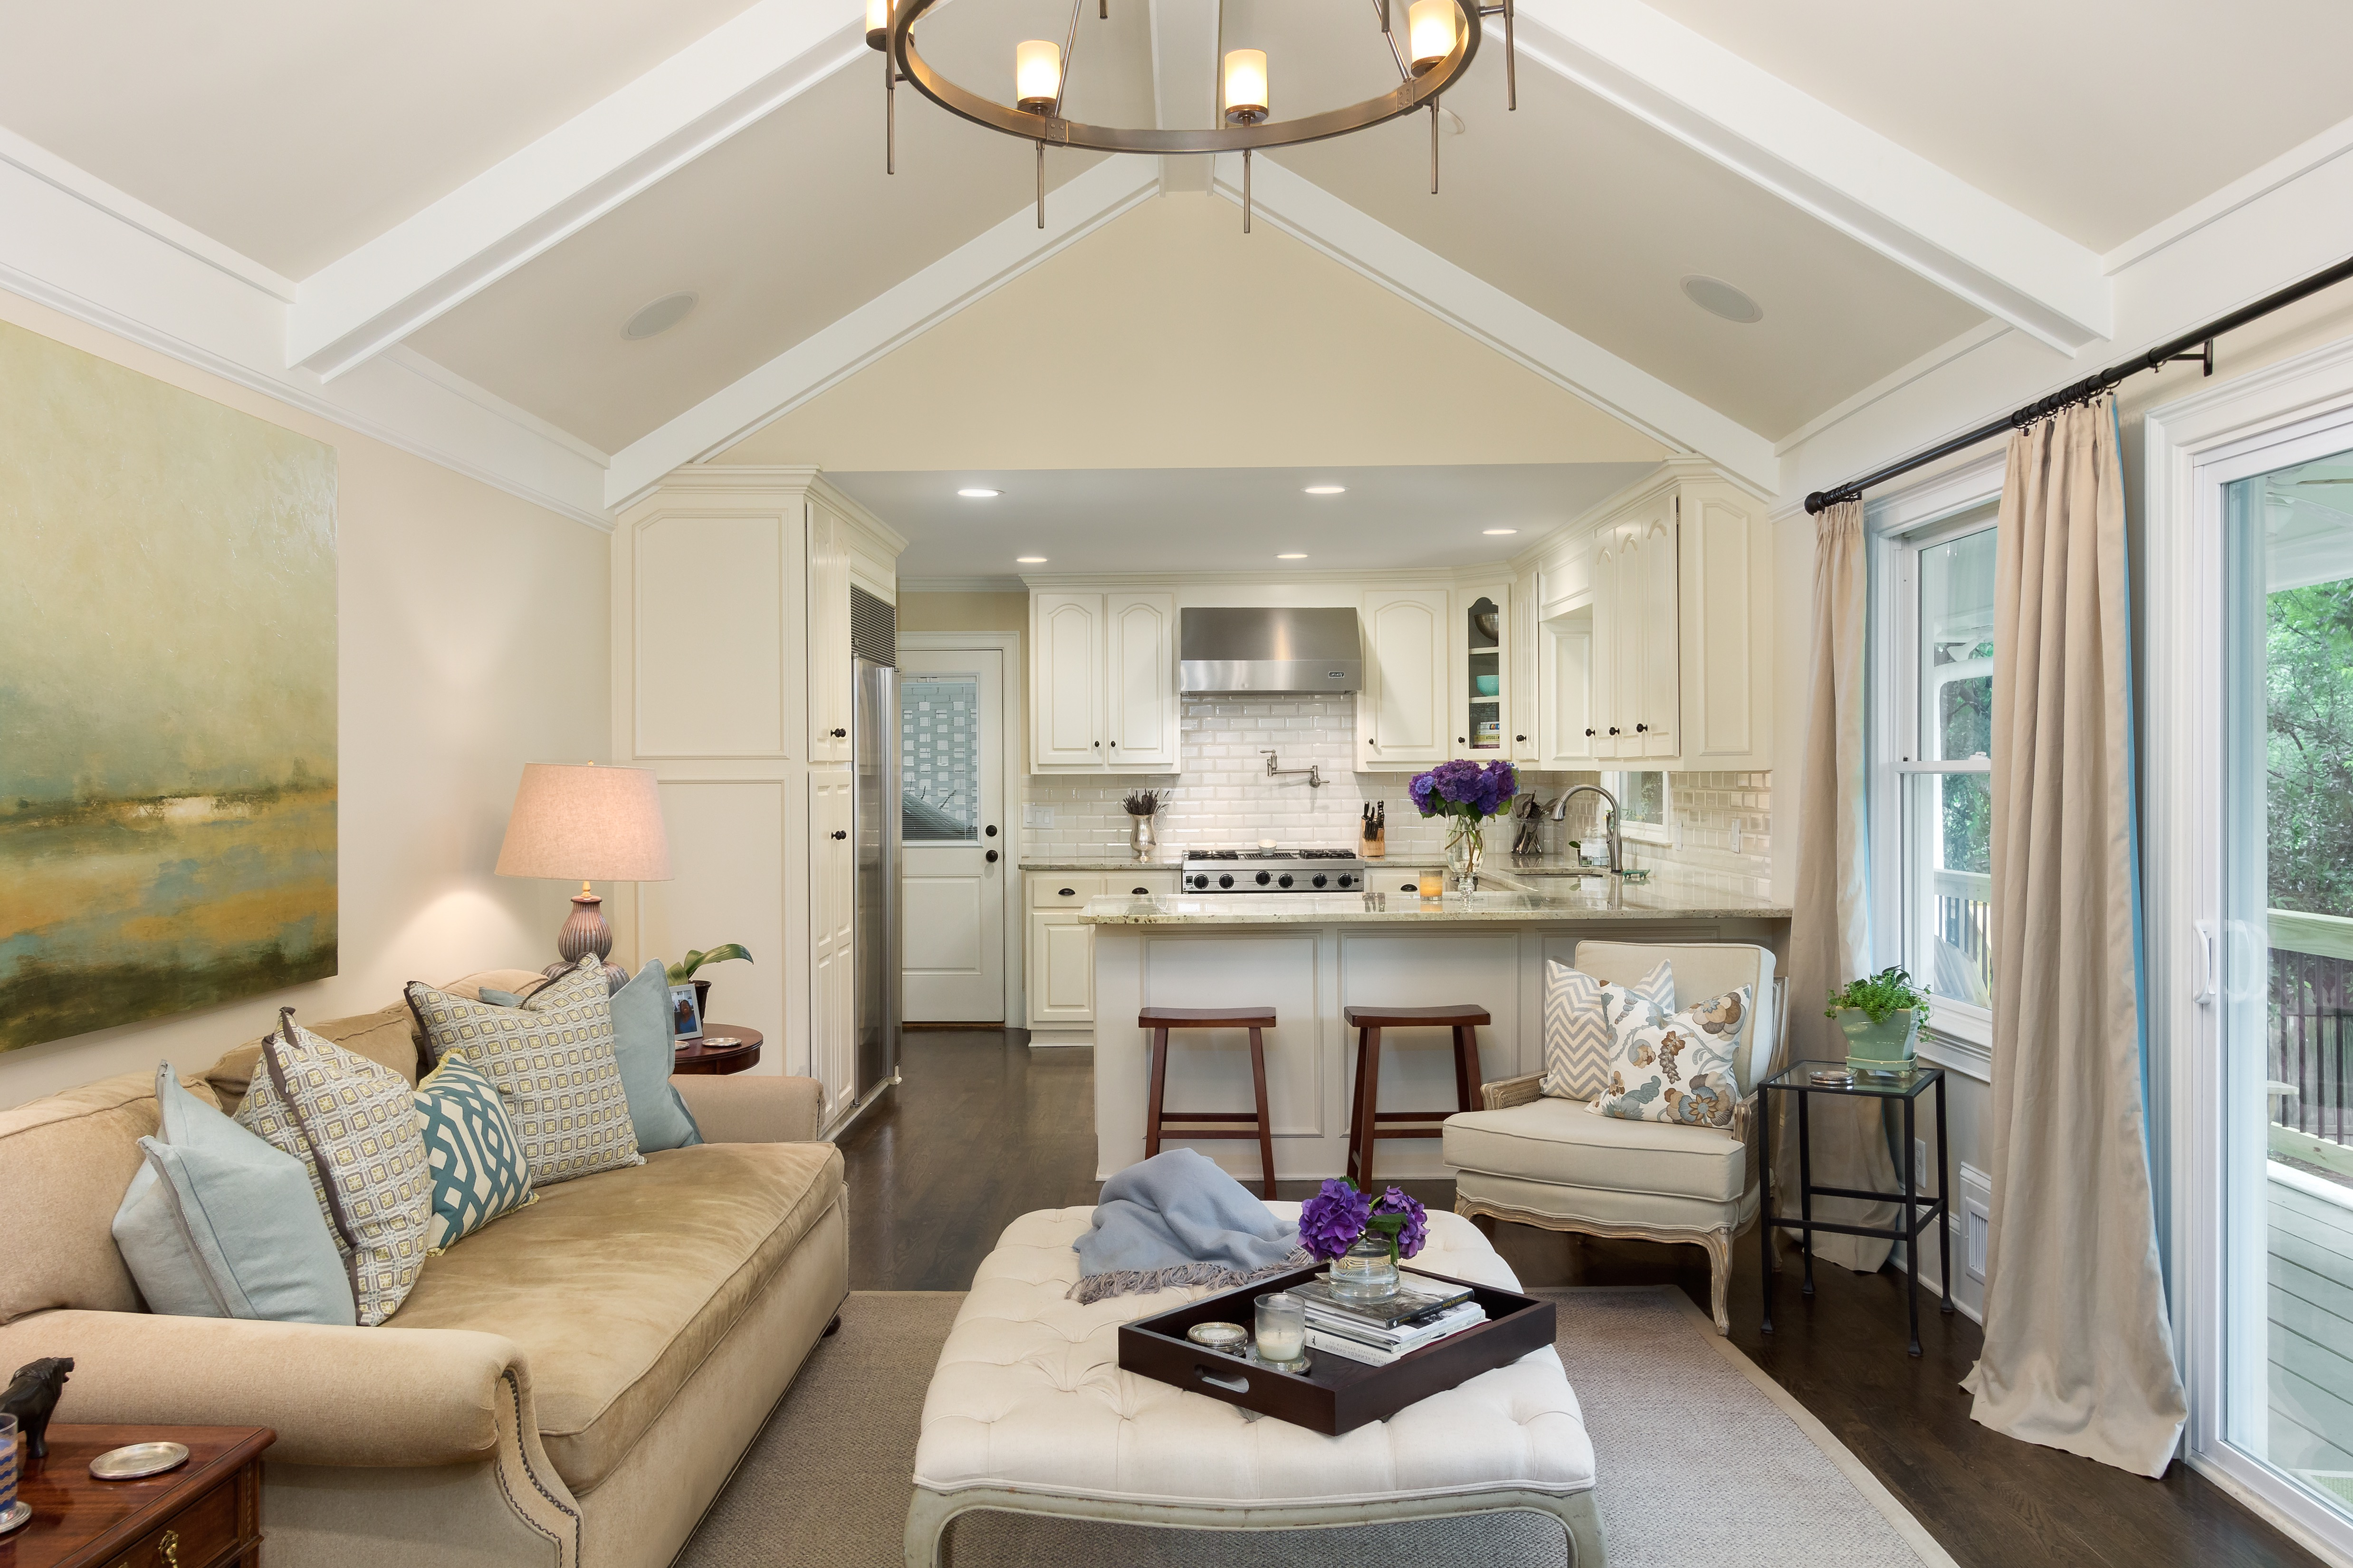 Small And Serene Neutral Traditional Living Room And Kitchen Combo (Image 21 of 26)